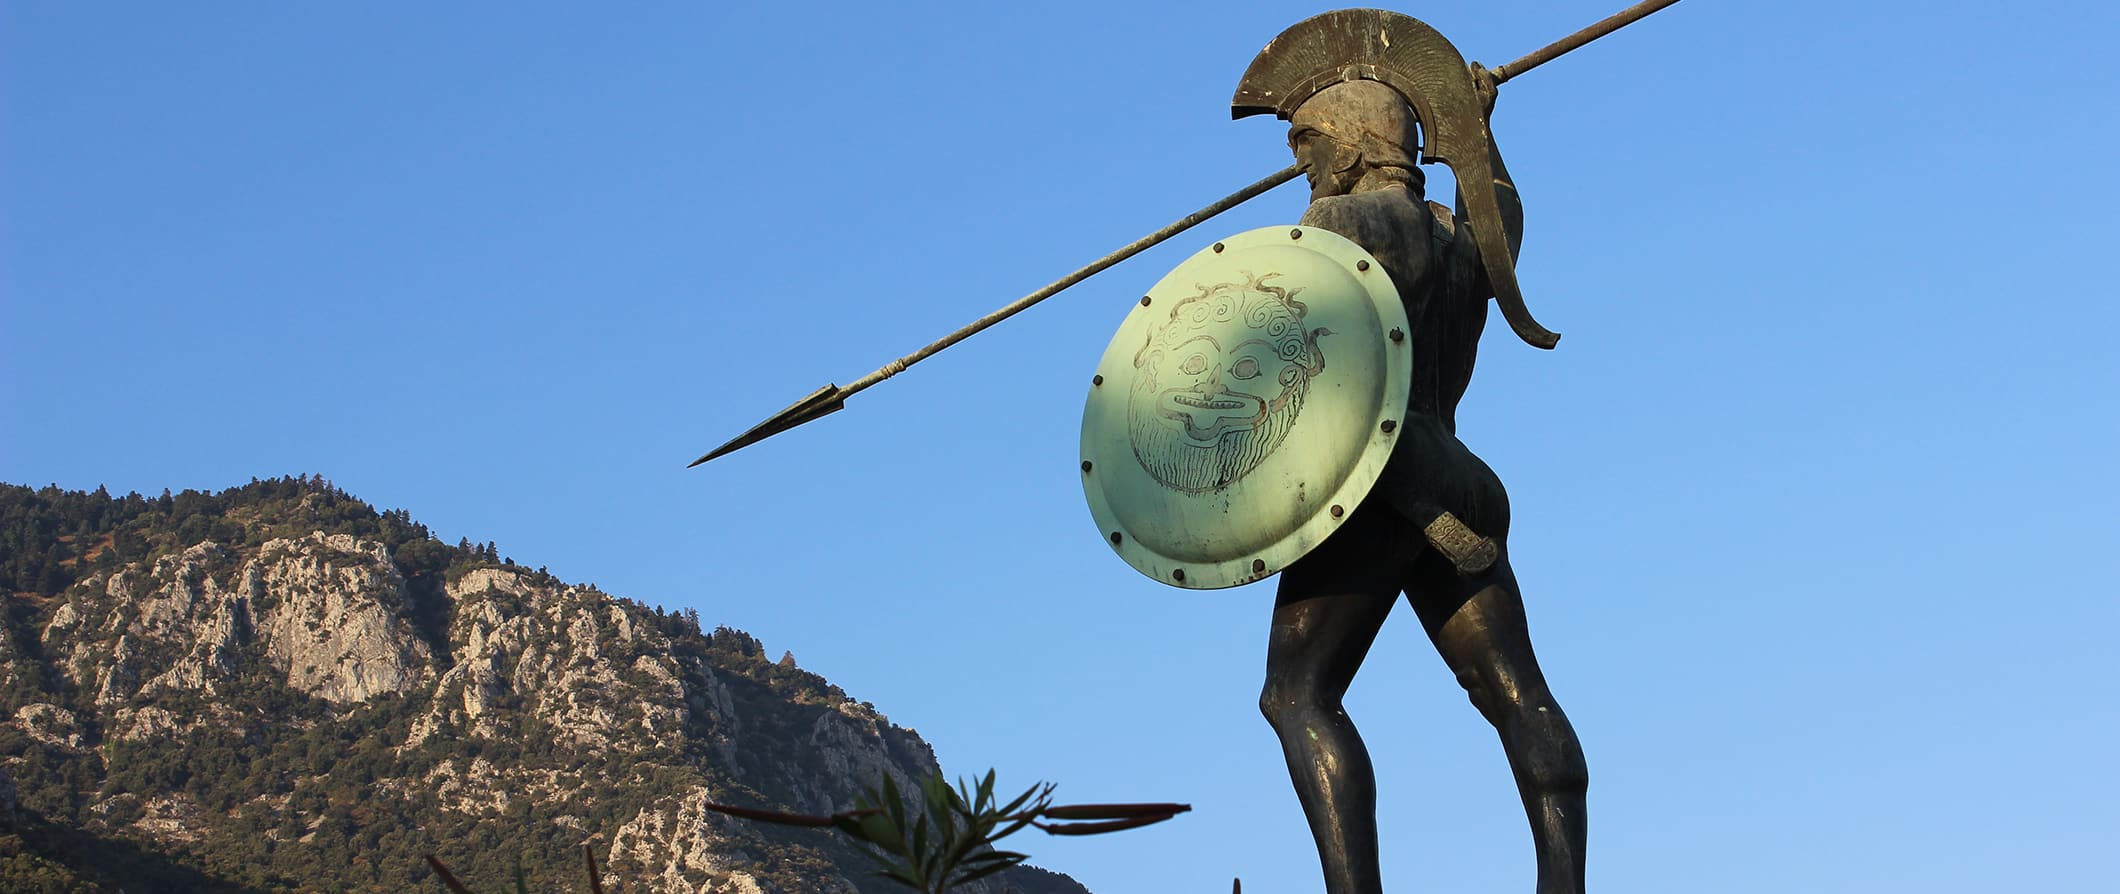 the Spartan soldier statue in Sparta